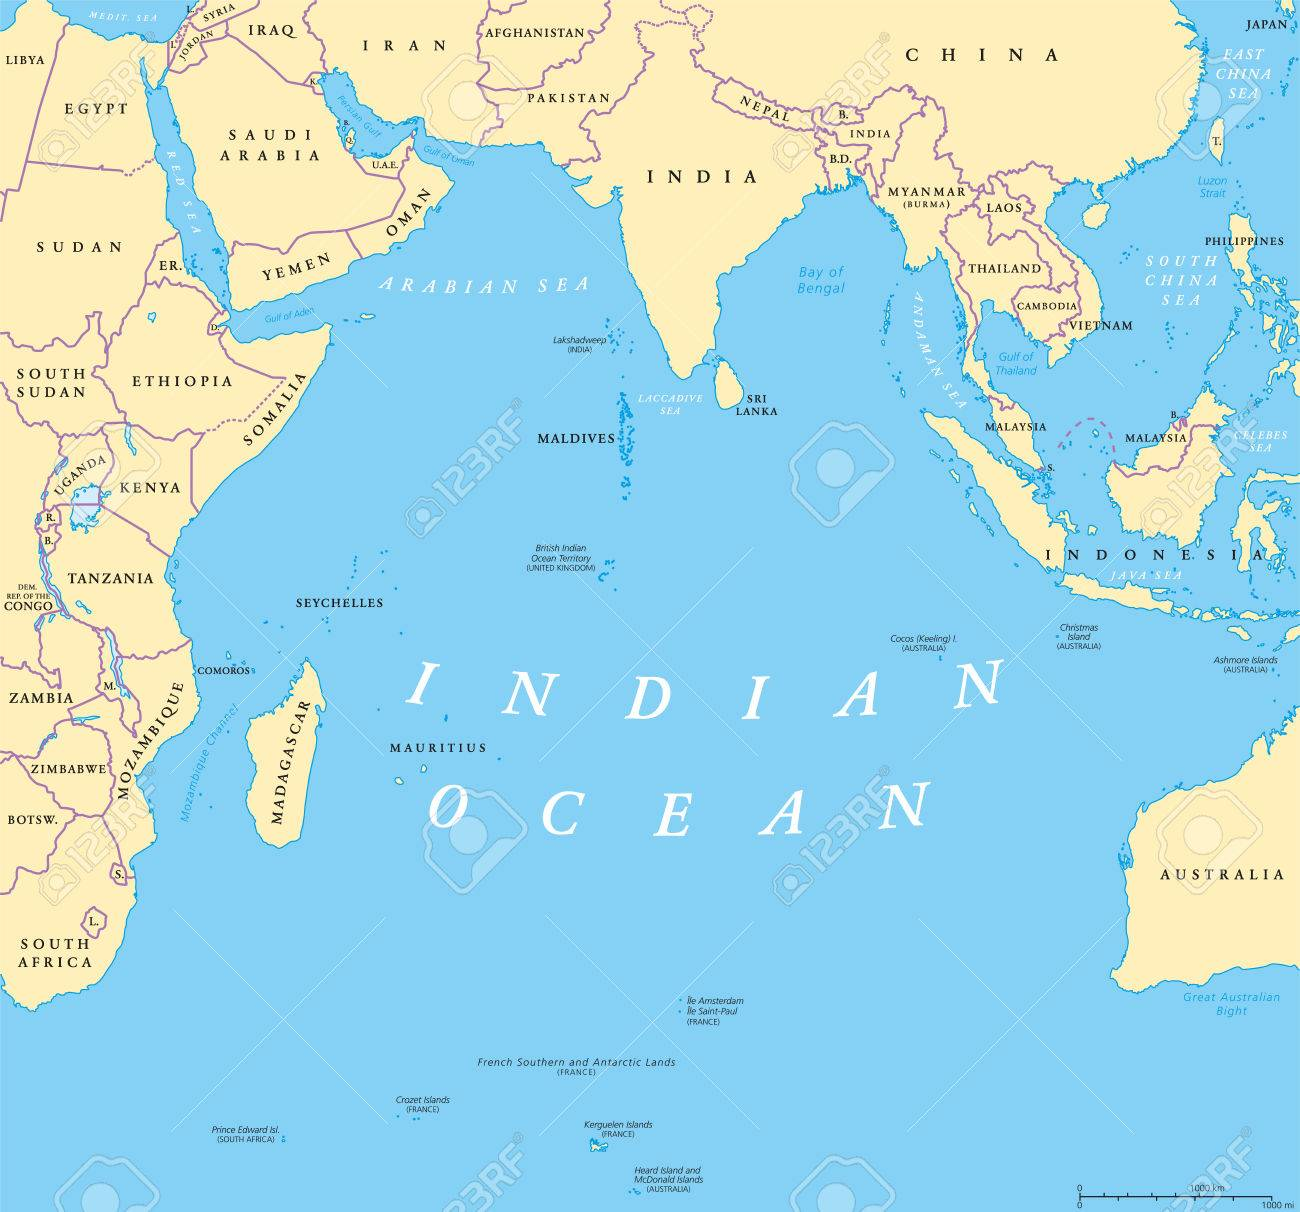 Indian Ocean Political Map. Countries And Borders. World's Third